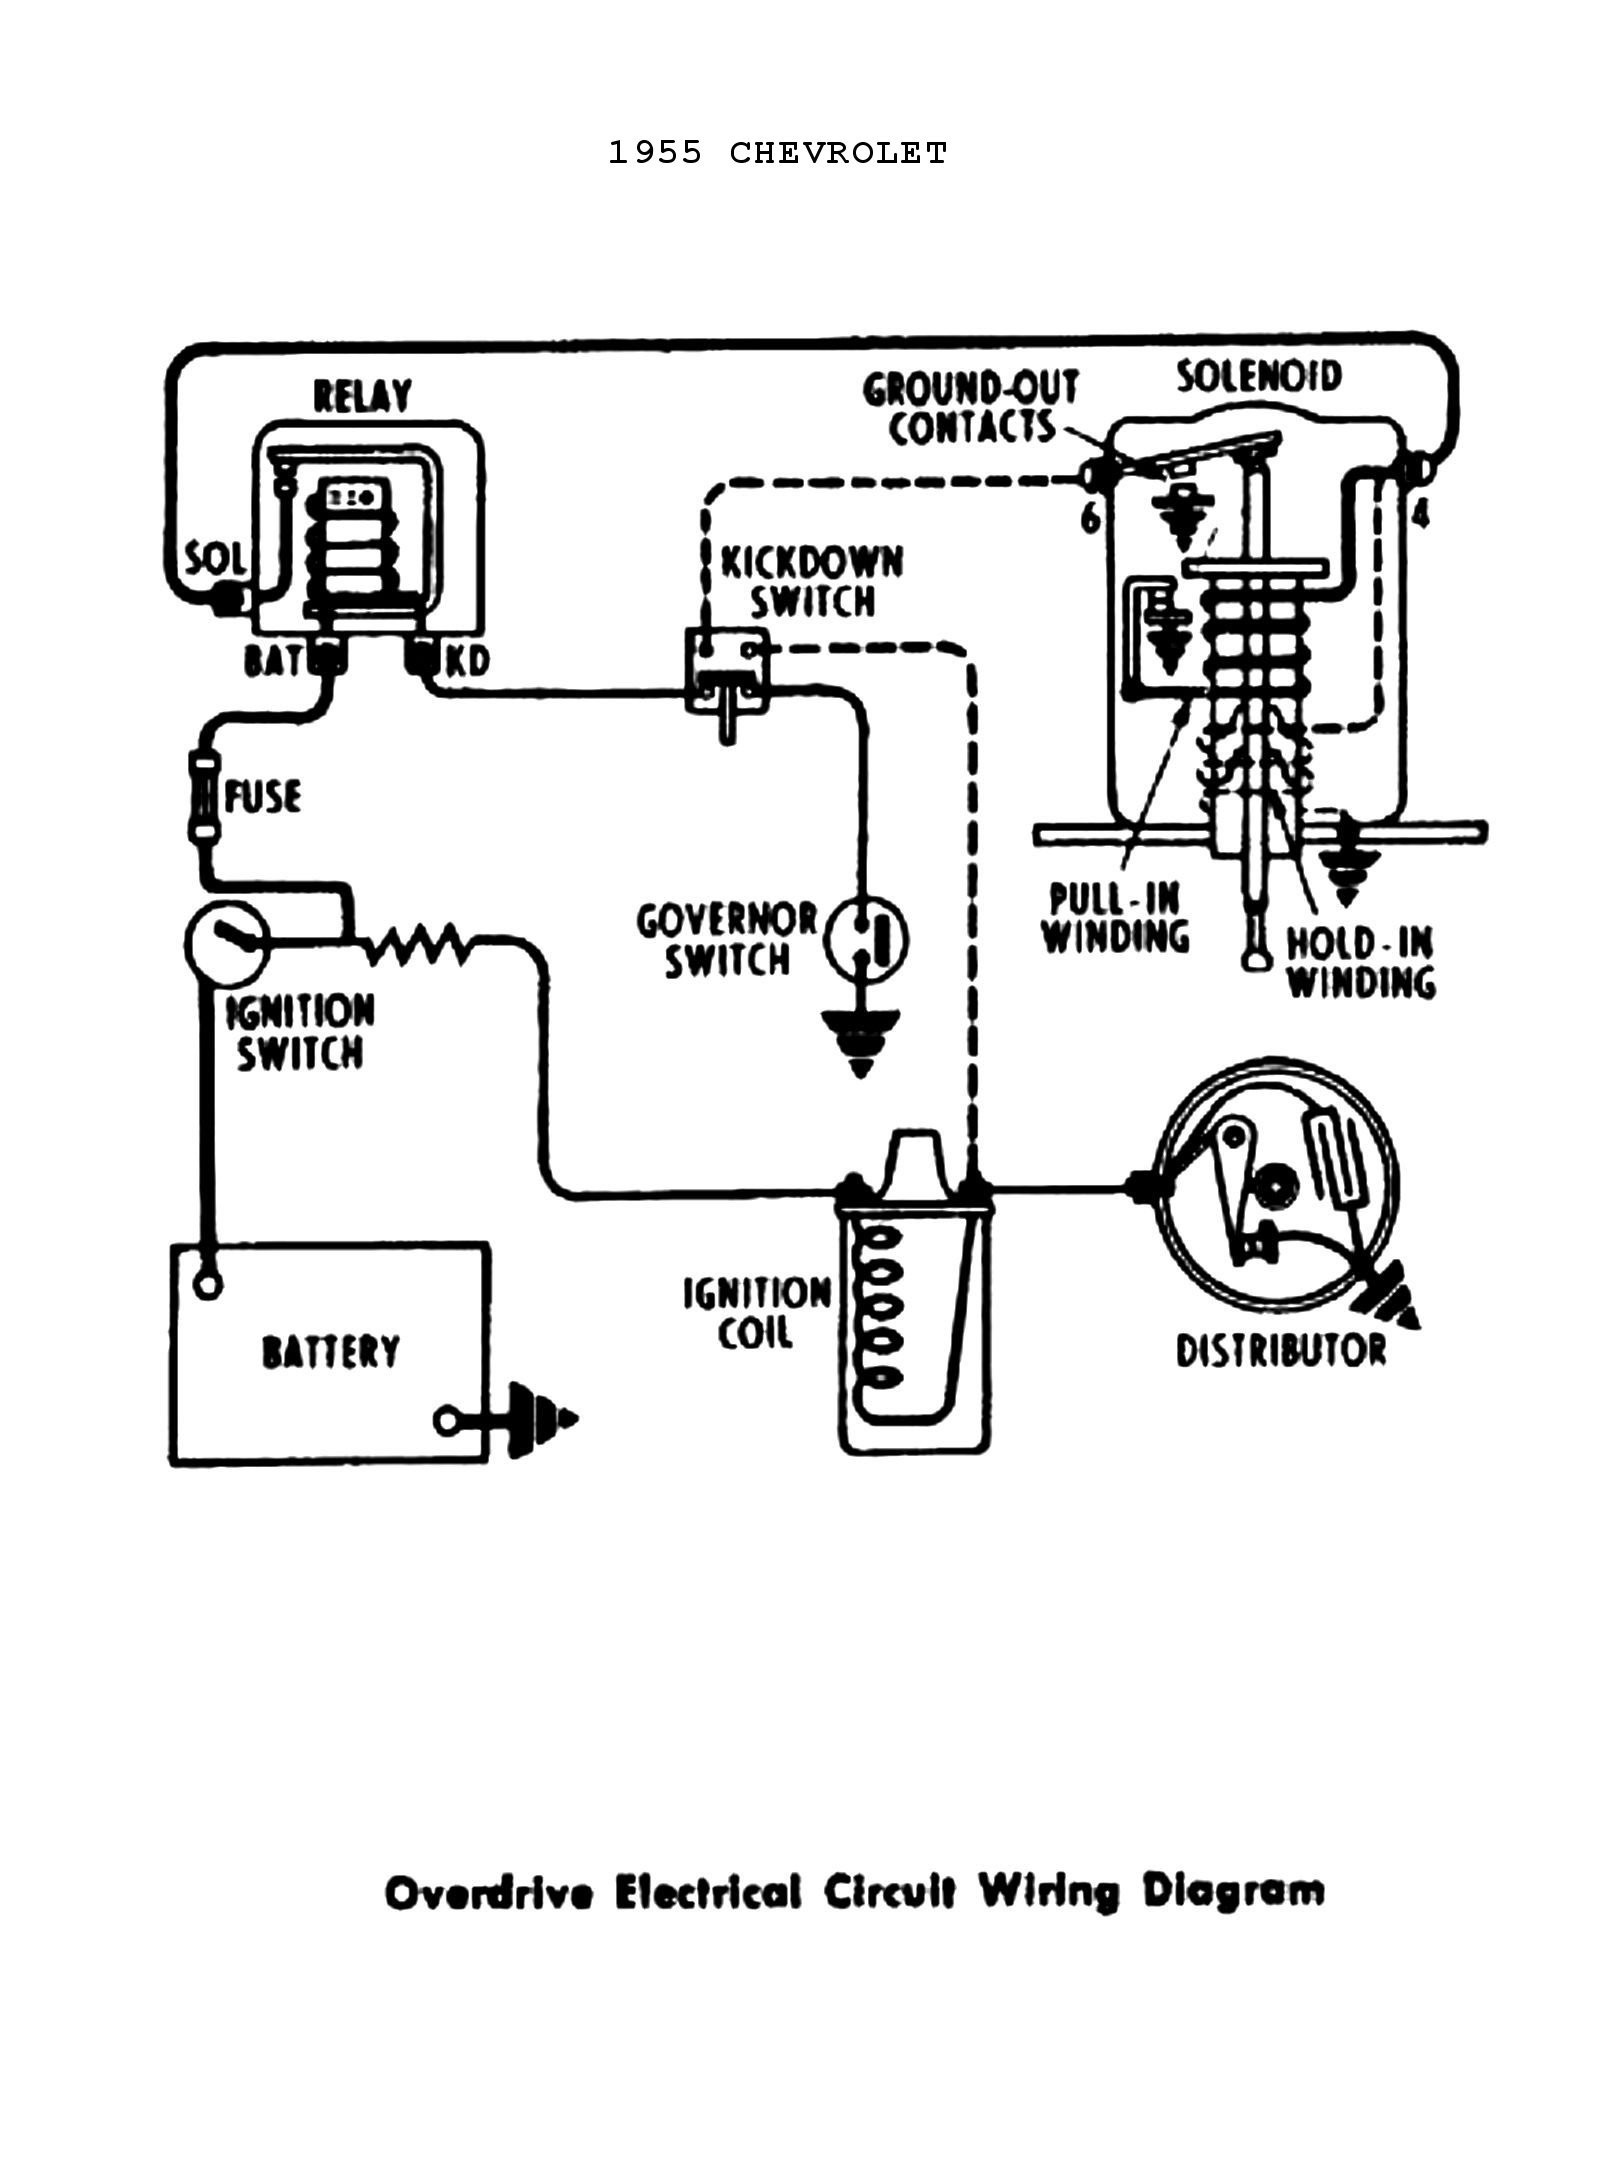 Diagram Of Coil Ignition System Car Ignition System Wiring Diagram Ignition Switch Wiring Diagram Of Diagram Of Coil Ignition System Car Ignition System Wiring Diagram